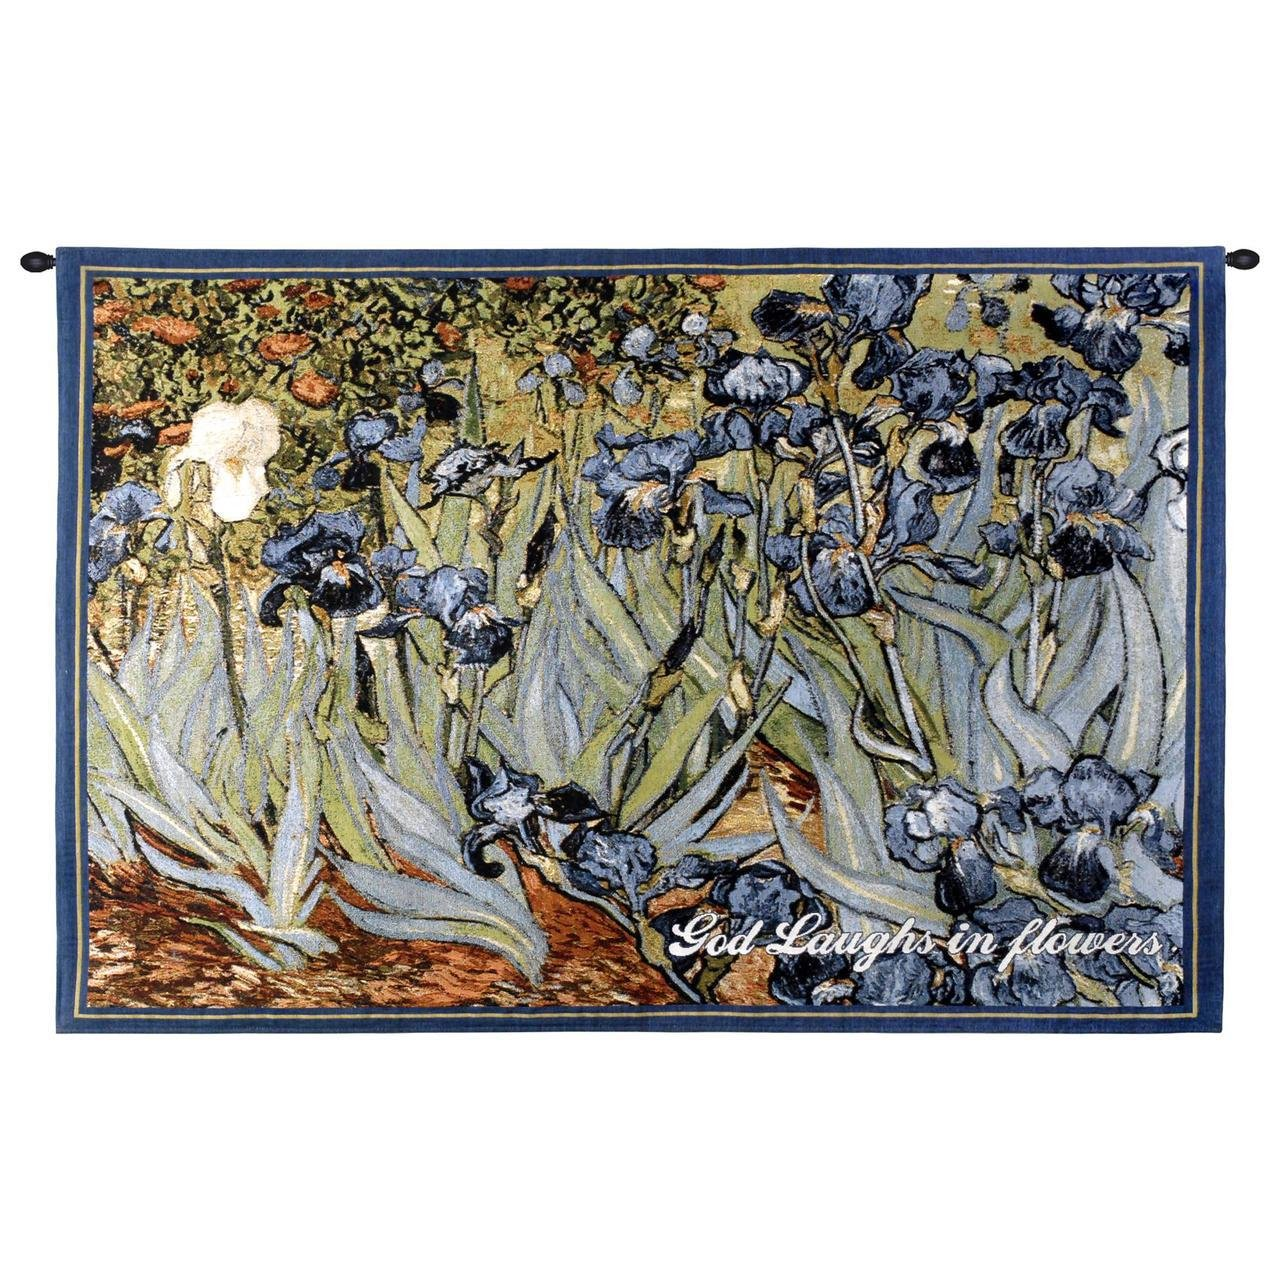 Pure Country Weavers Irises With Inspiration Wall Tapestry 2603-WH 53 inches wide by 38 inches long, 100% cotton by Pure Country Weavers